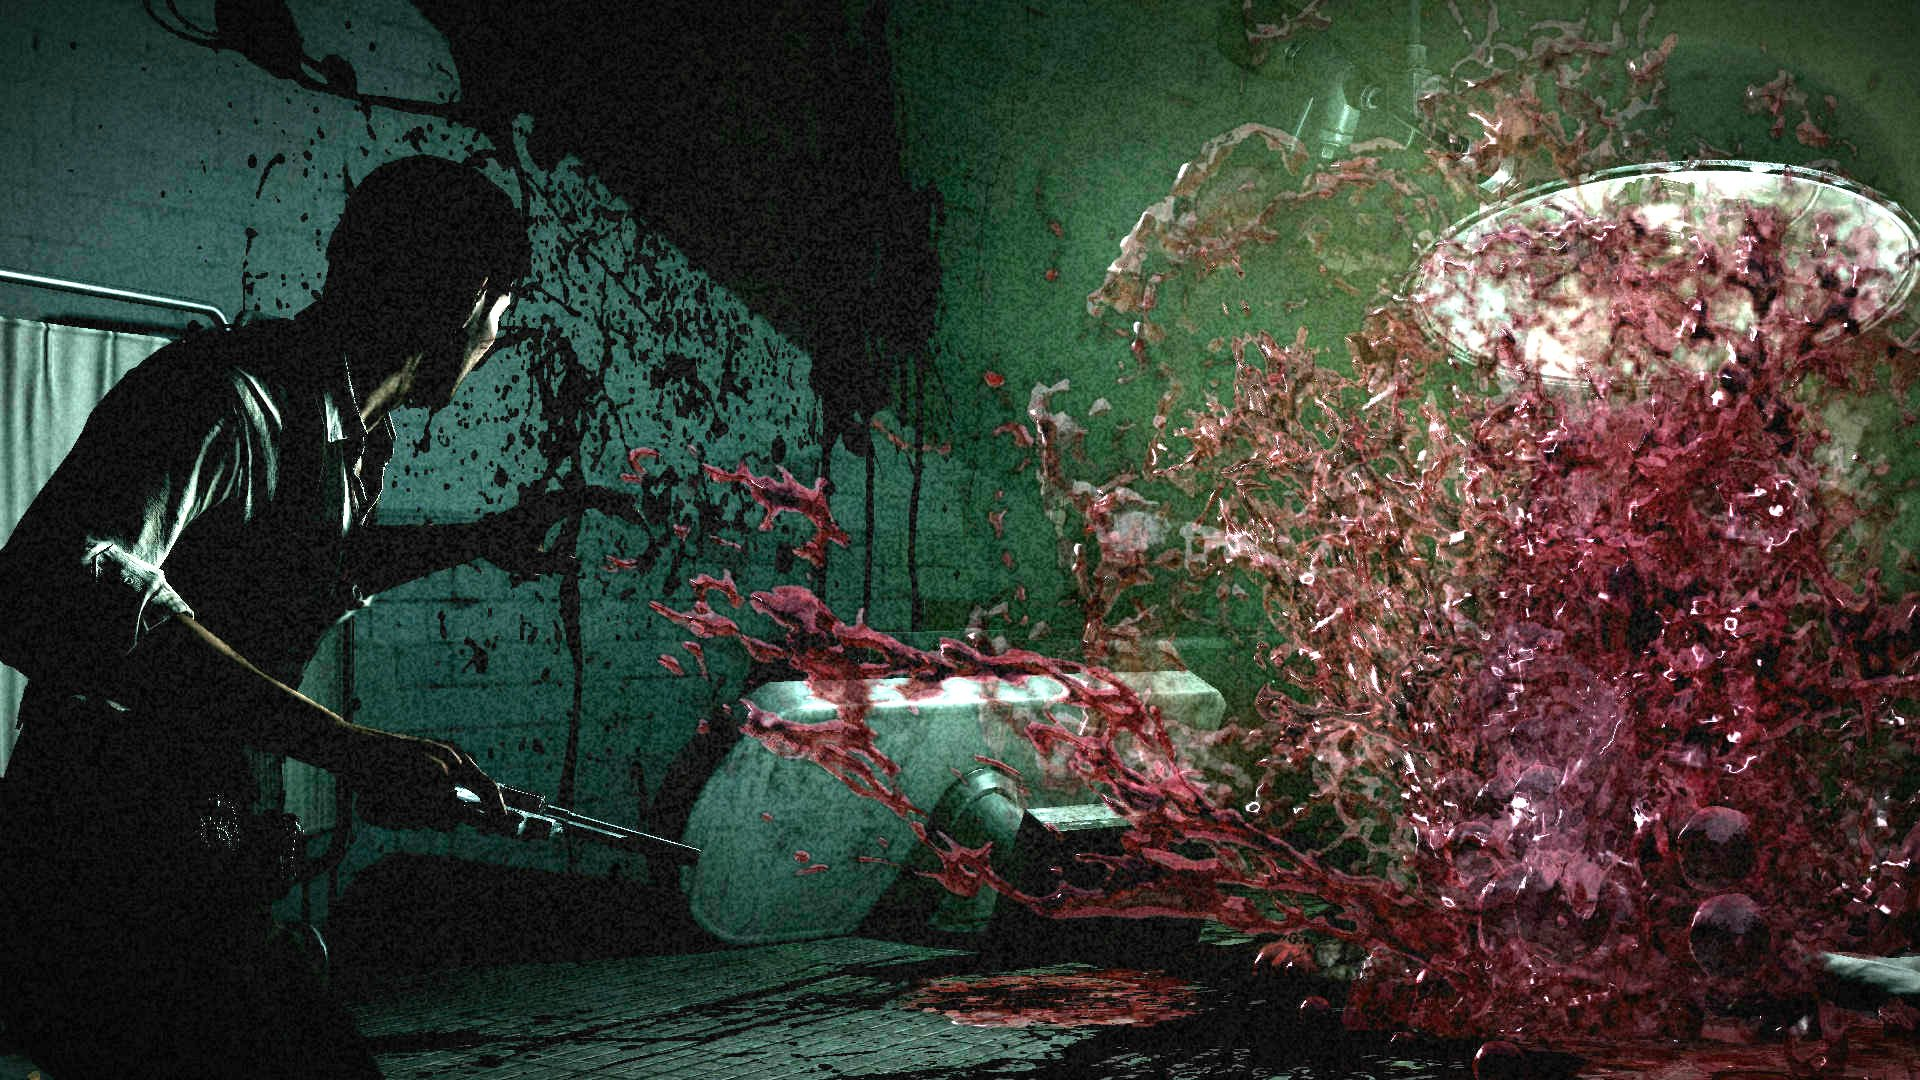 The Evil Within 2 Wallpaper 01 1920x1080: THE EVIL WITHIN Survival Horror Dark Blood Bc Wallpaper